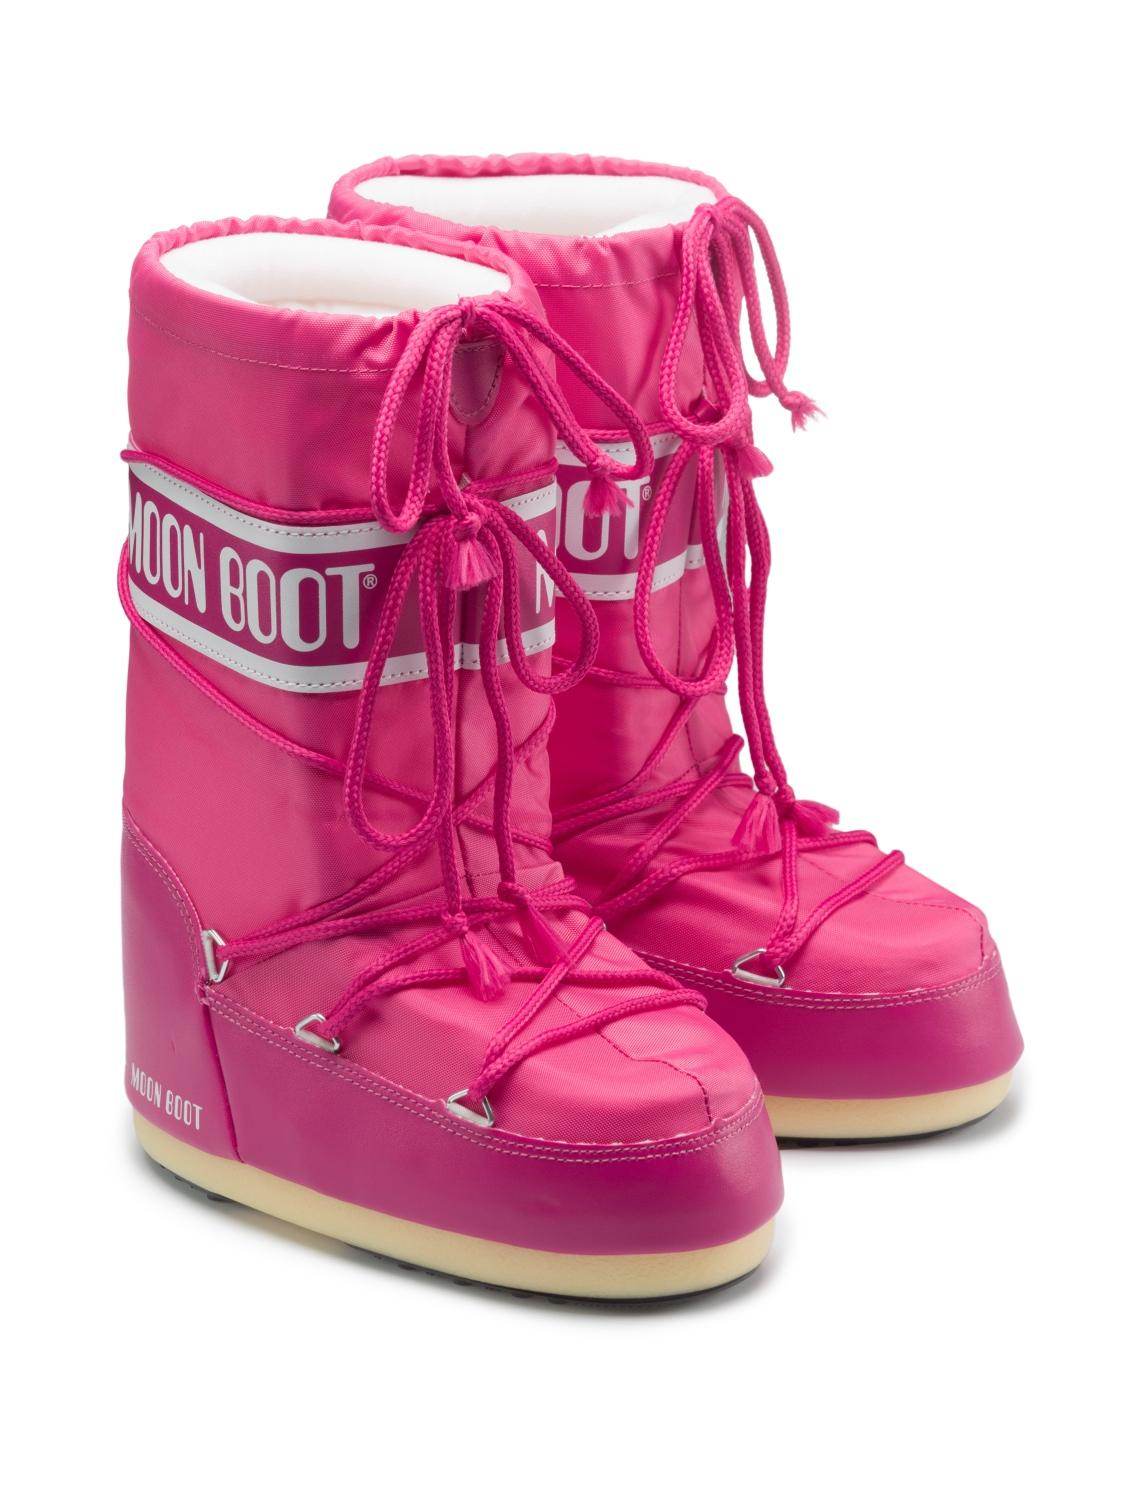 MOON BOOT boots pink for girls| NICKIS.com